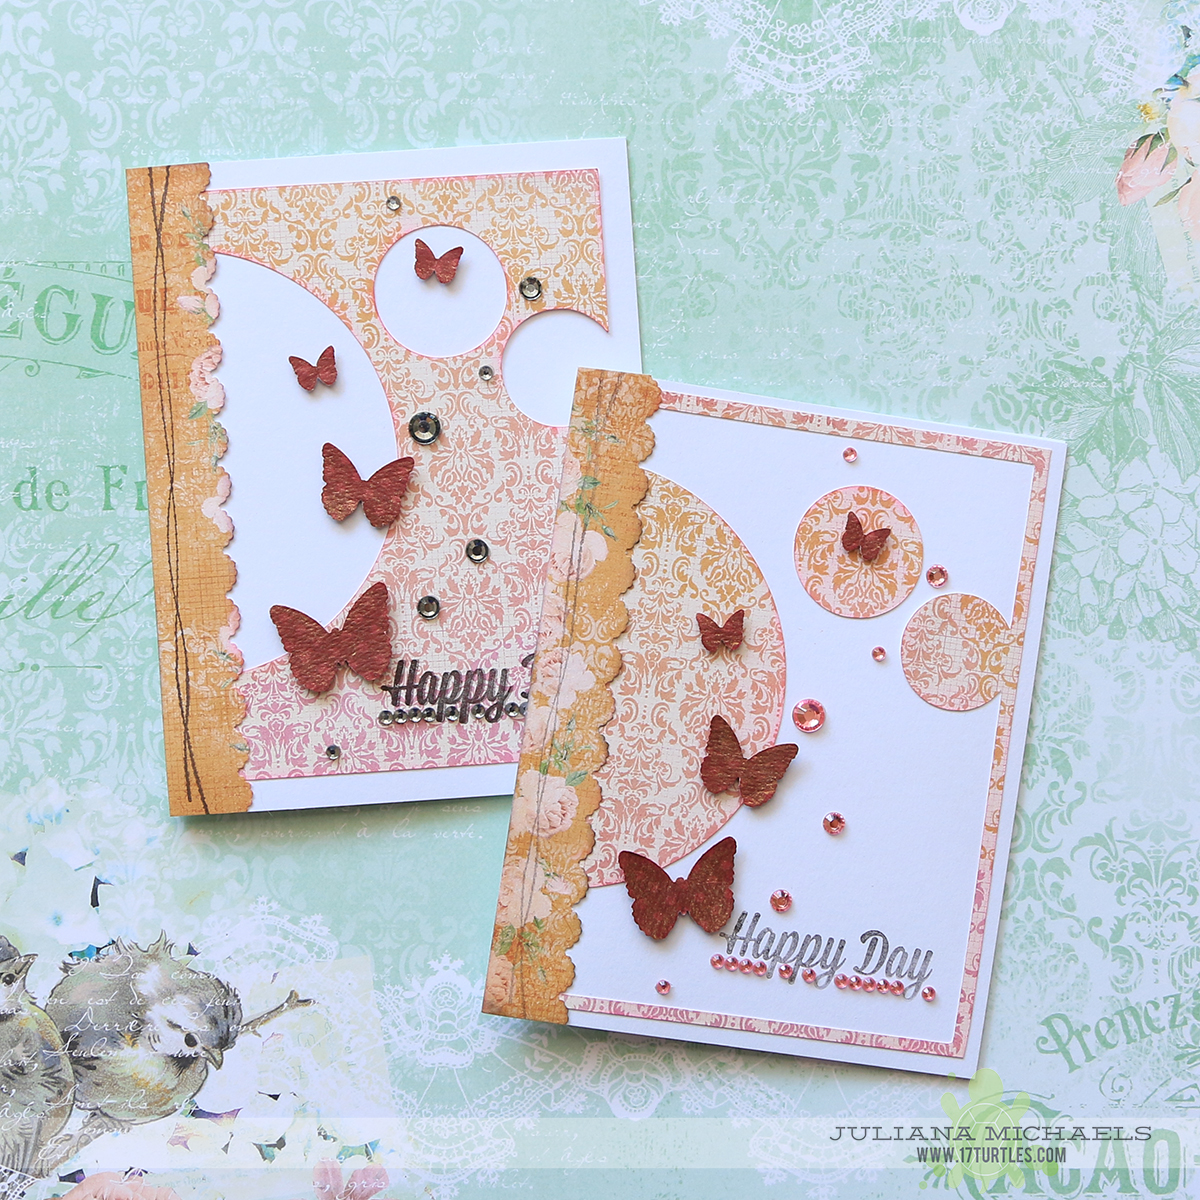 Creating Cards With Paper Scraps & A Digital Cut File by Juliana Michaels featuring BoBunny Madeleine